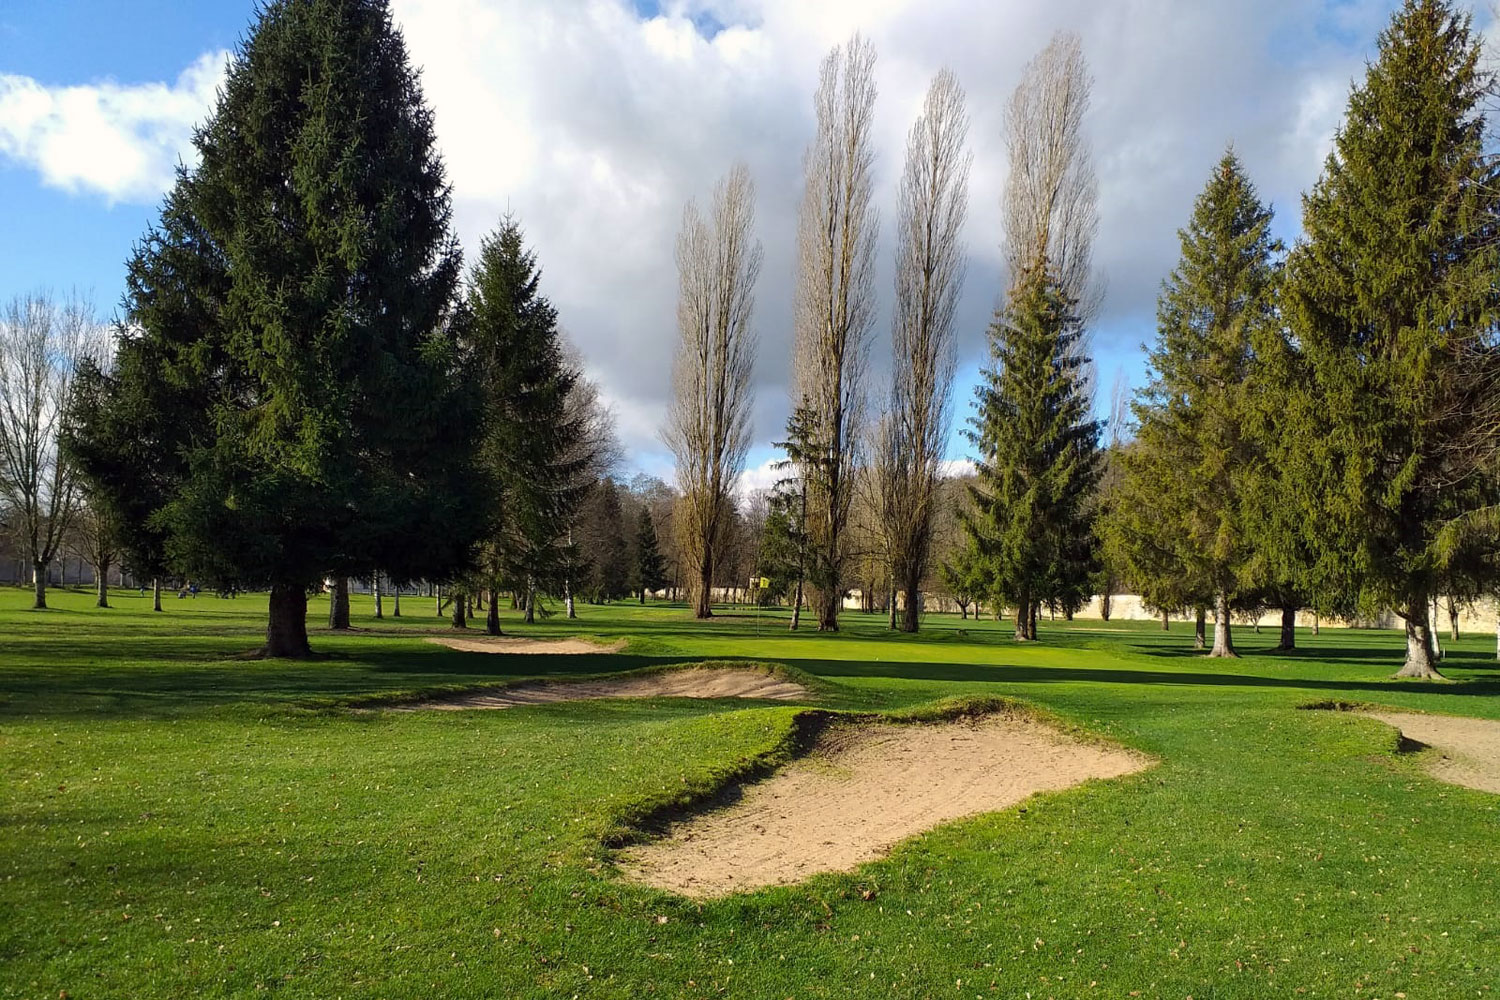 Golf-course-at-Tanlay,-France